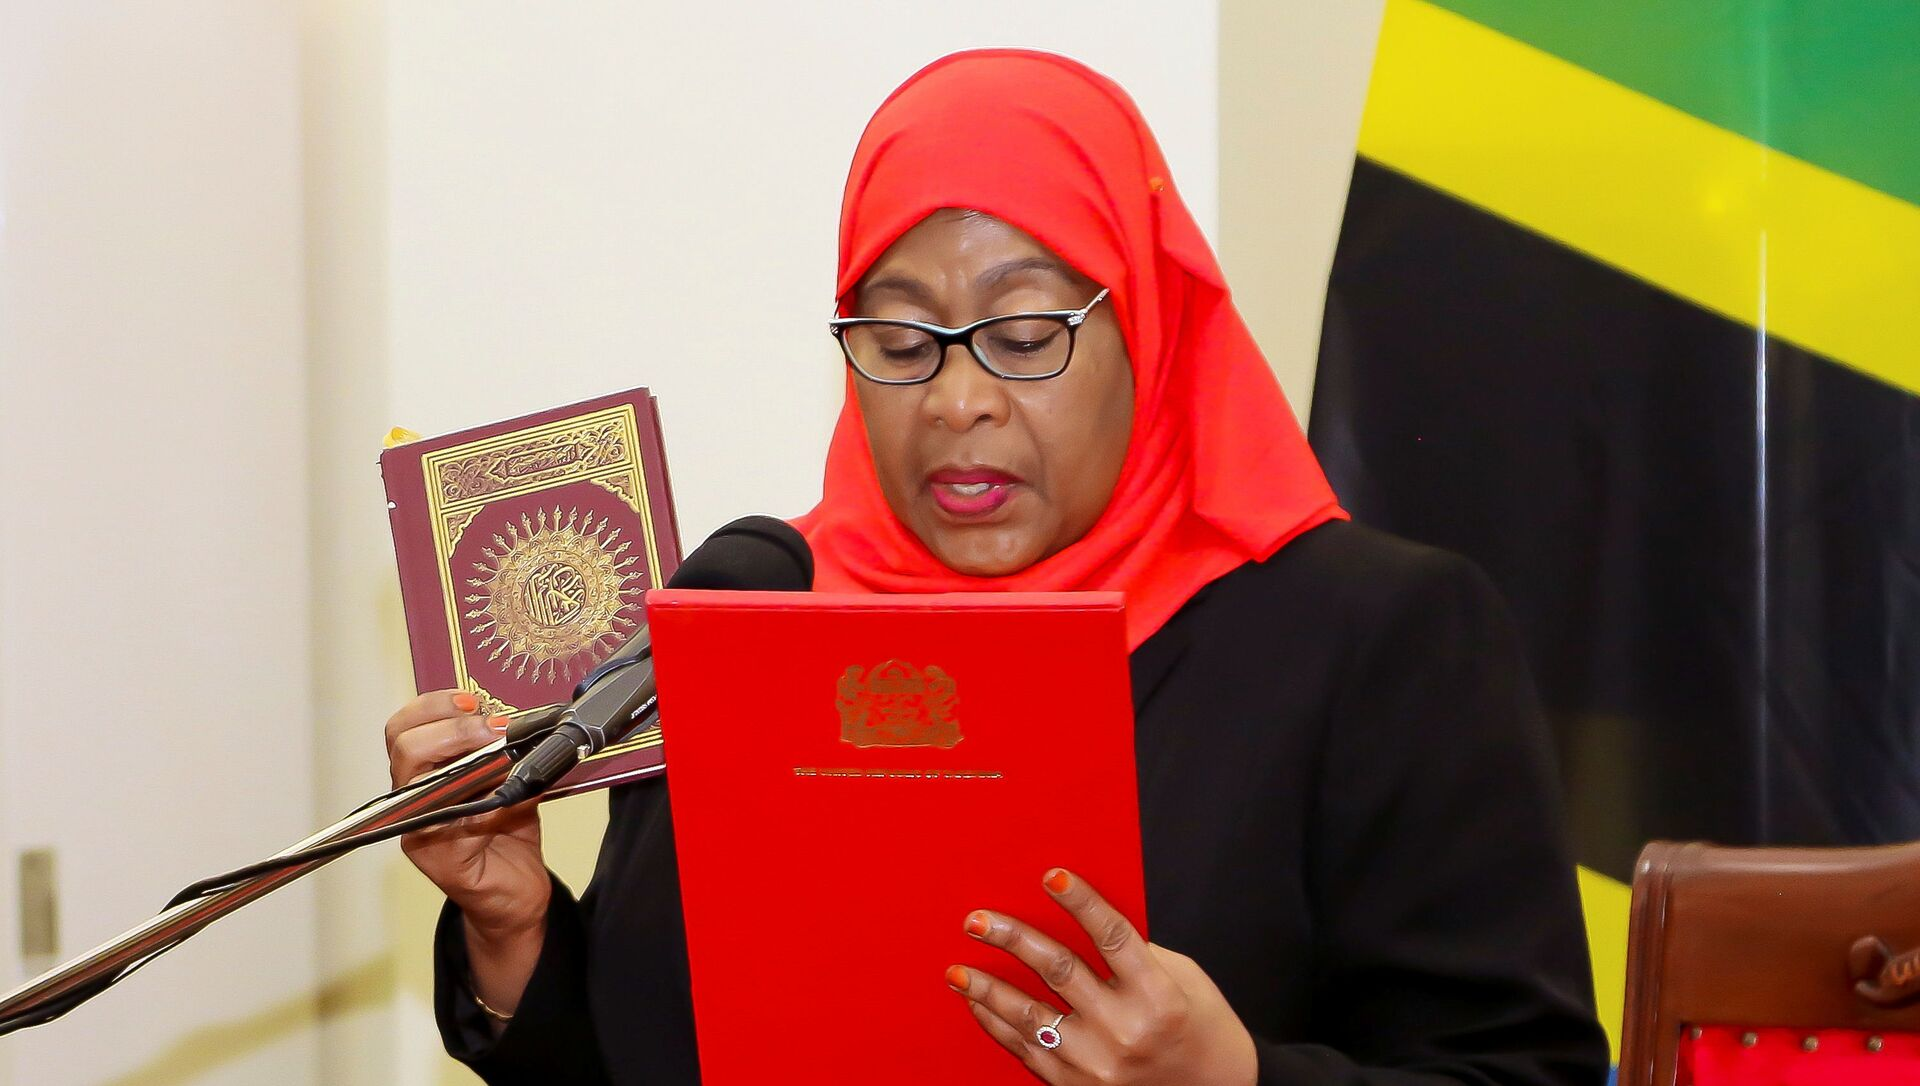 Tanzania's new President Samia Suluhu Hassan takes oath of office following the death of her predecessor John Pombe Magufuli at State House in Dar es Salaam, Tanzania March 19, 2021 - Sputnik Italia, 1920, 19.03.2021